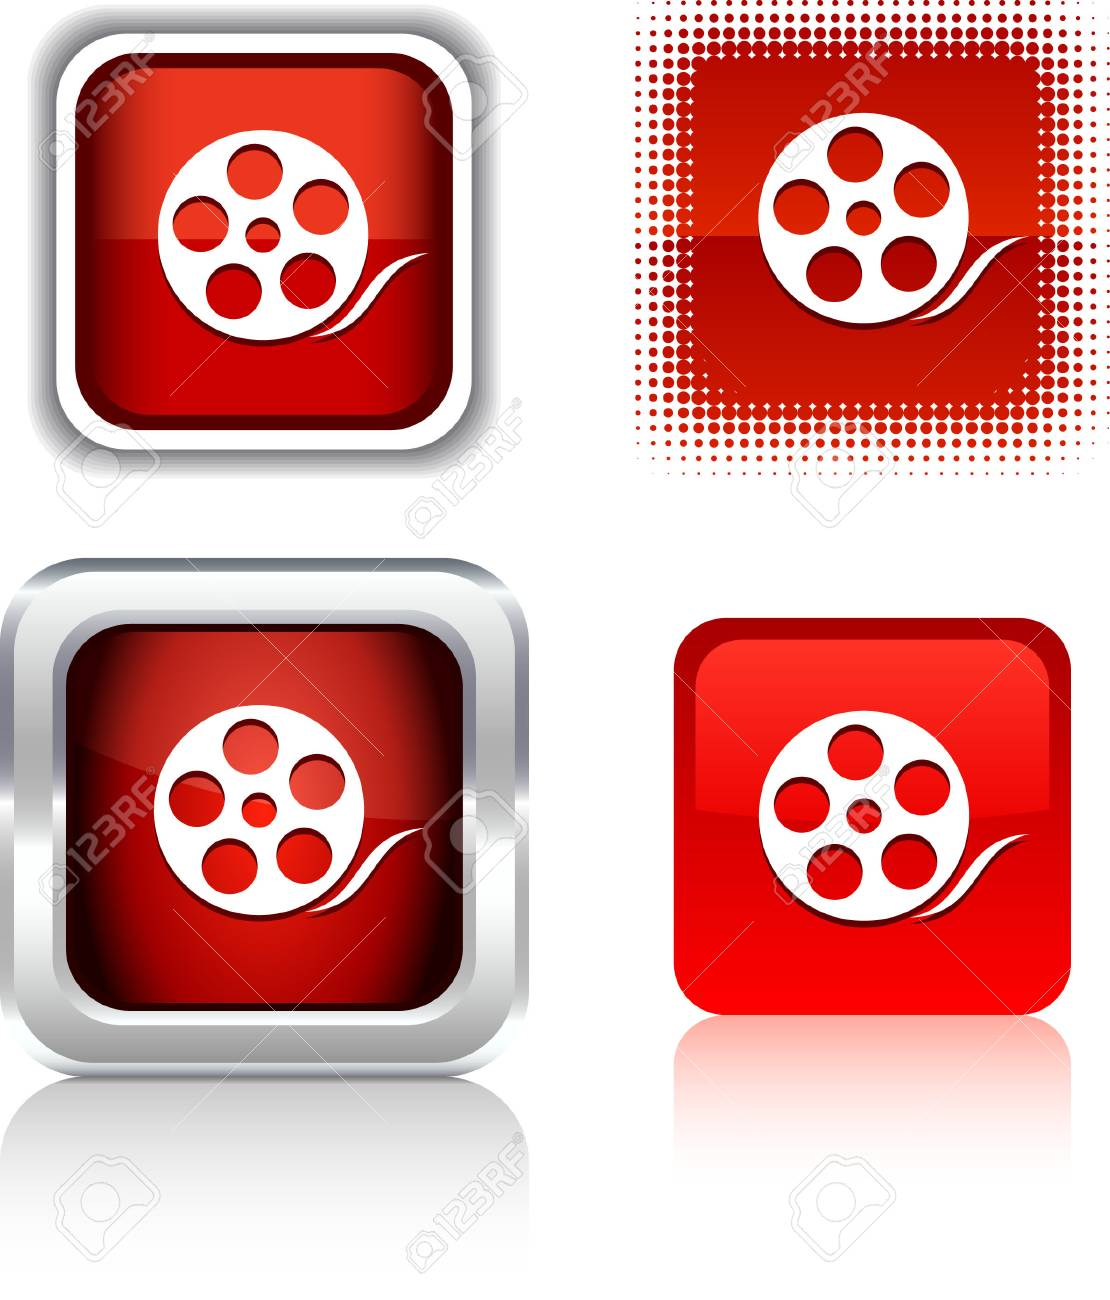 Media   square buttons. Vector illustration. Stock Vector - 6094356